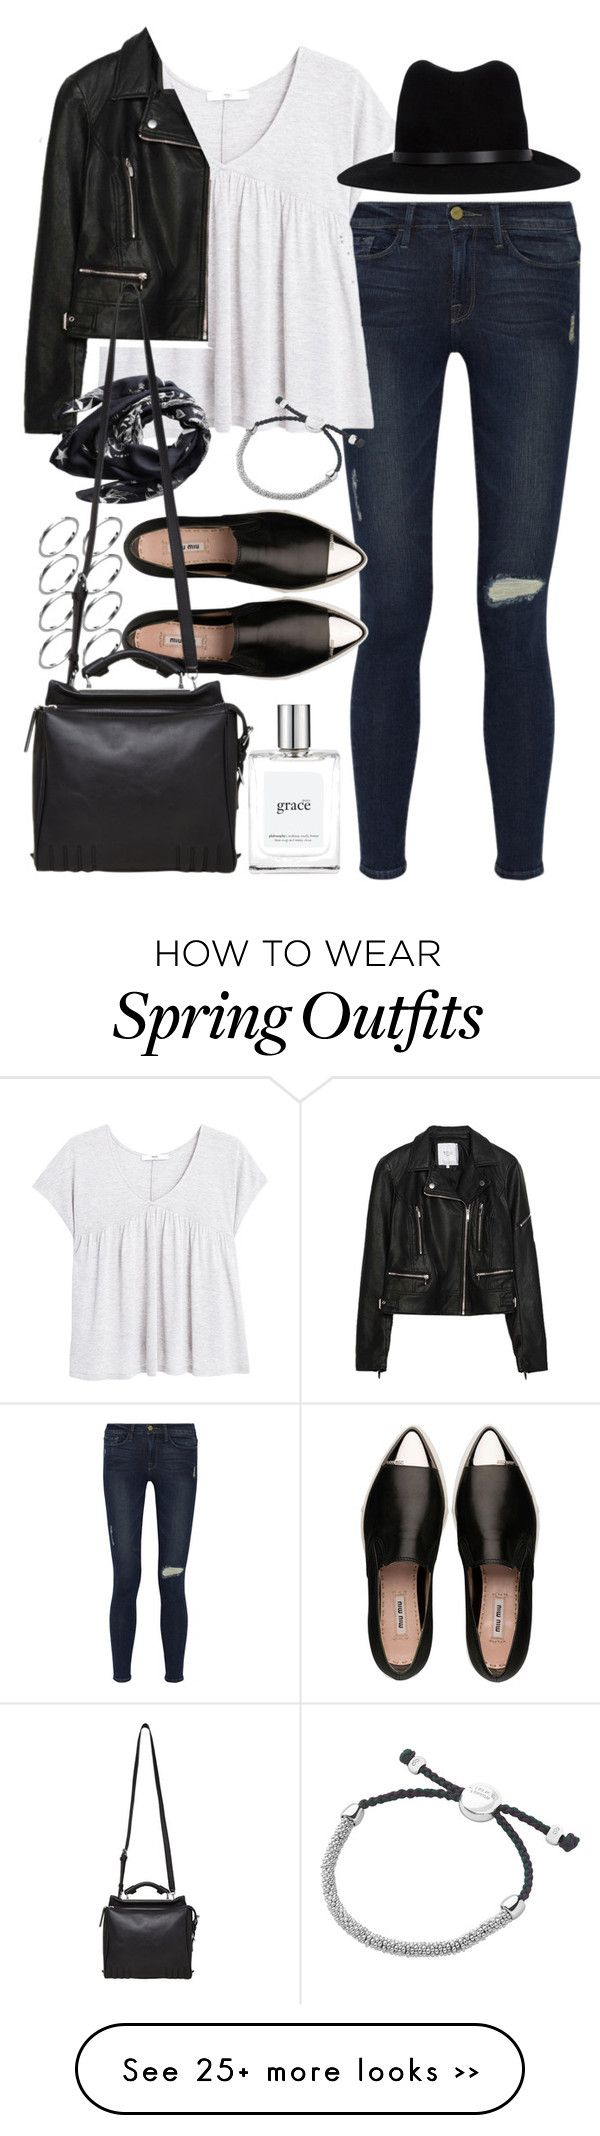 """""""Outfit for a shopping trip"""" by ferned on Polyvore"""